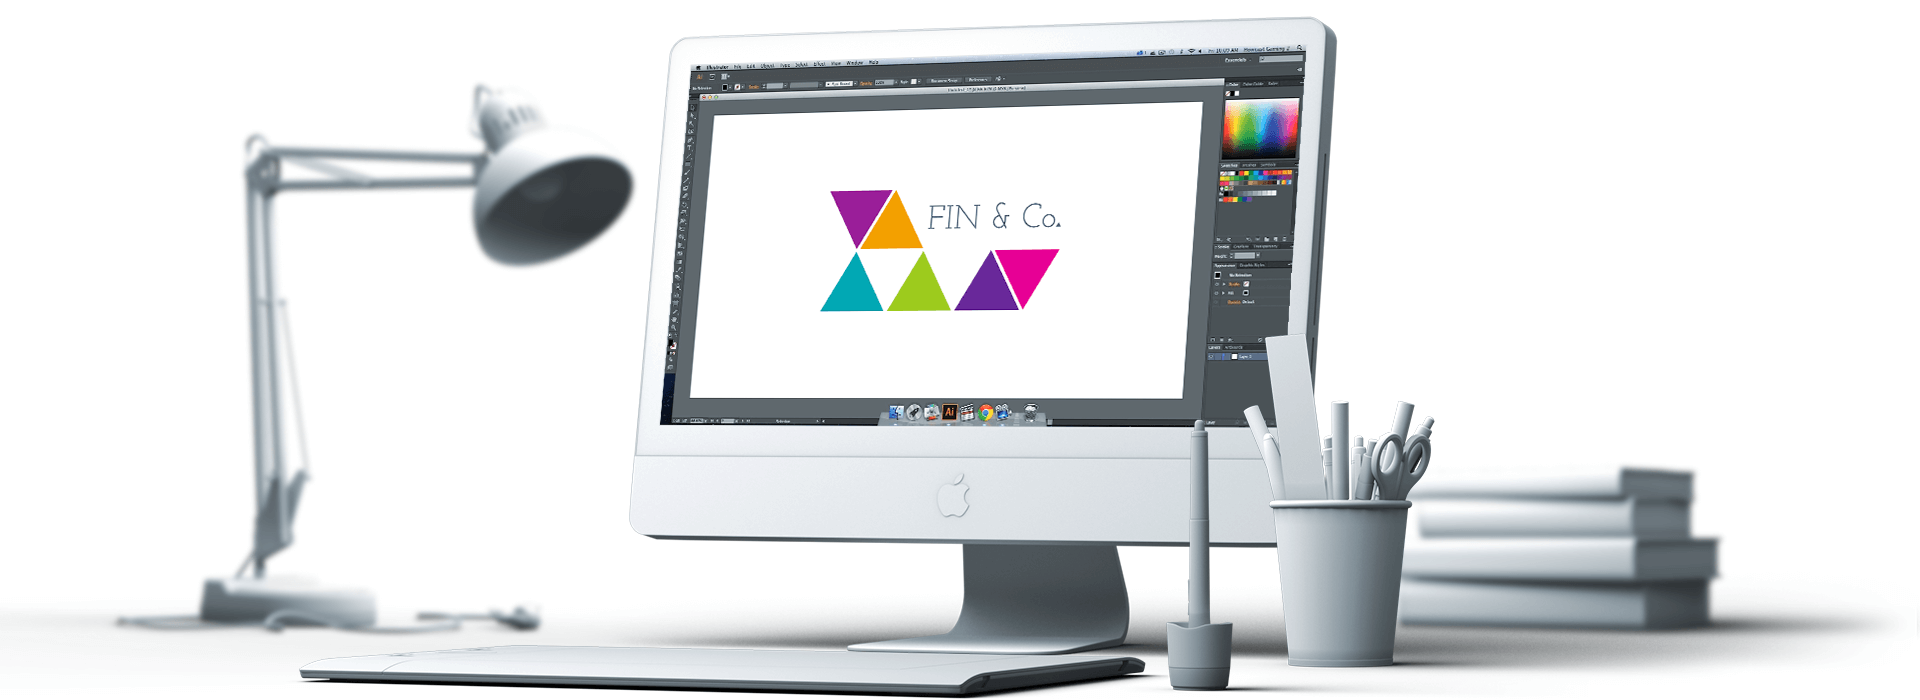 Fin & Co logo on iMac screen